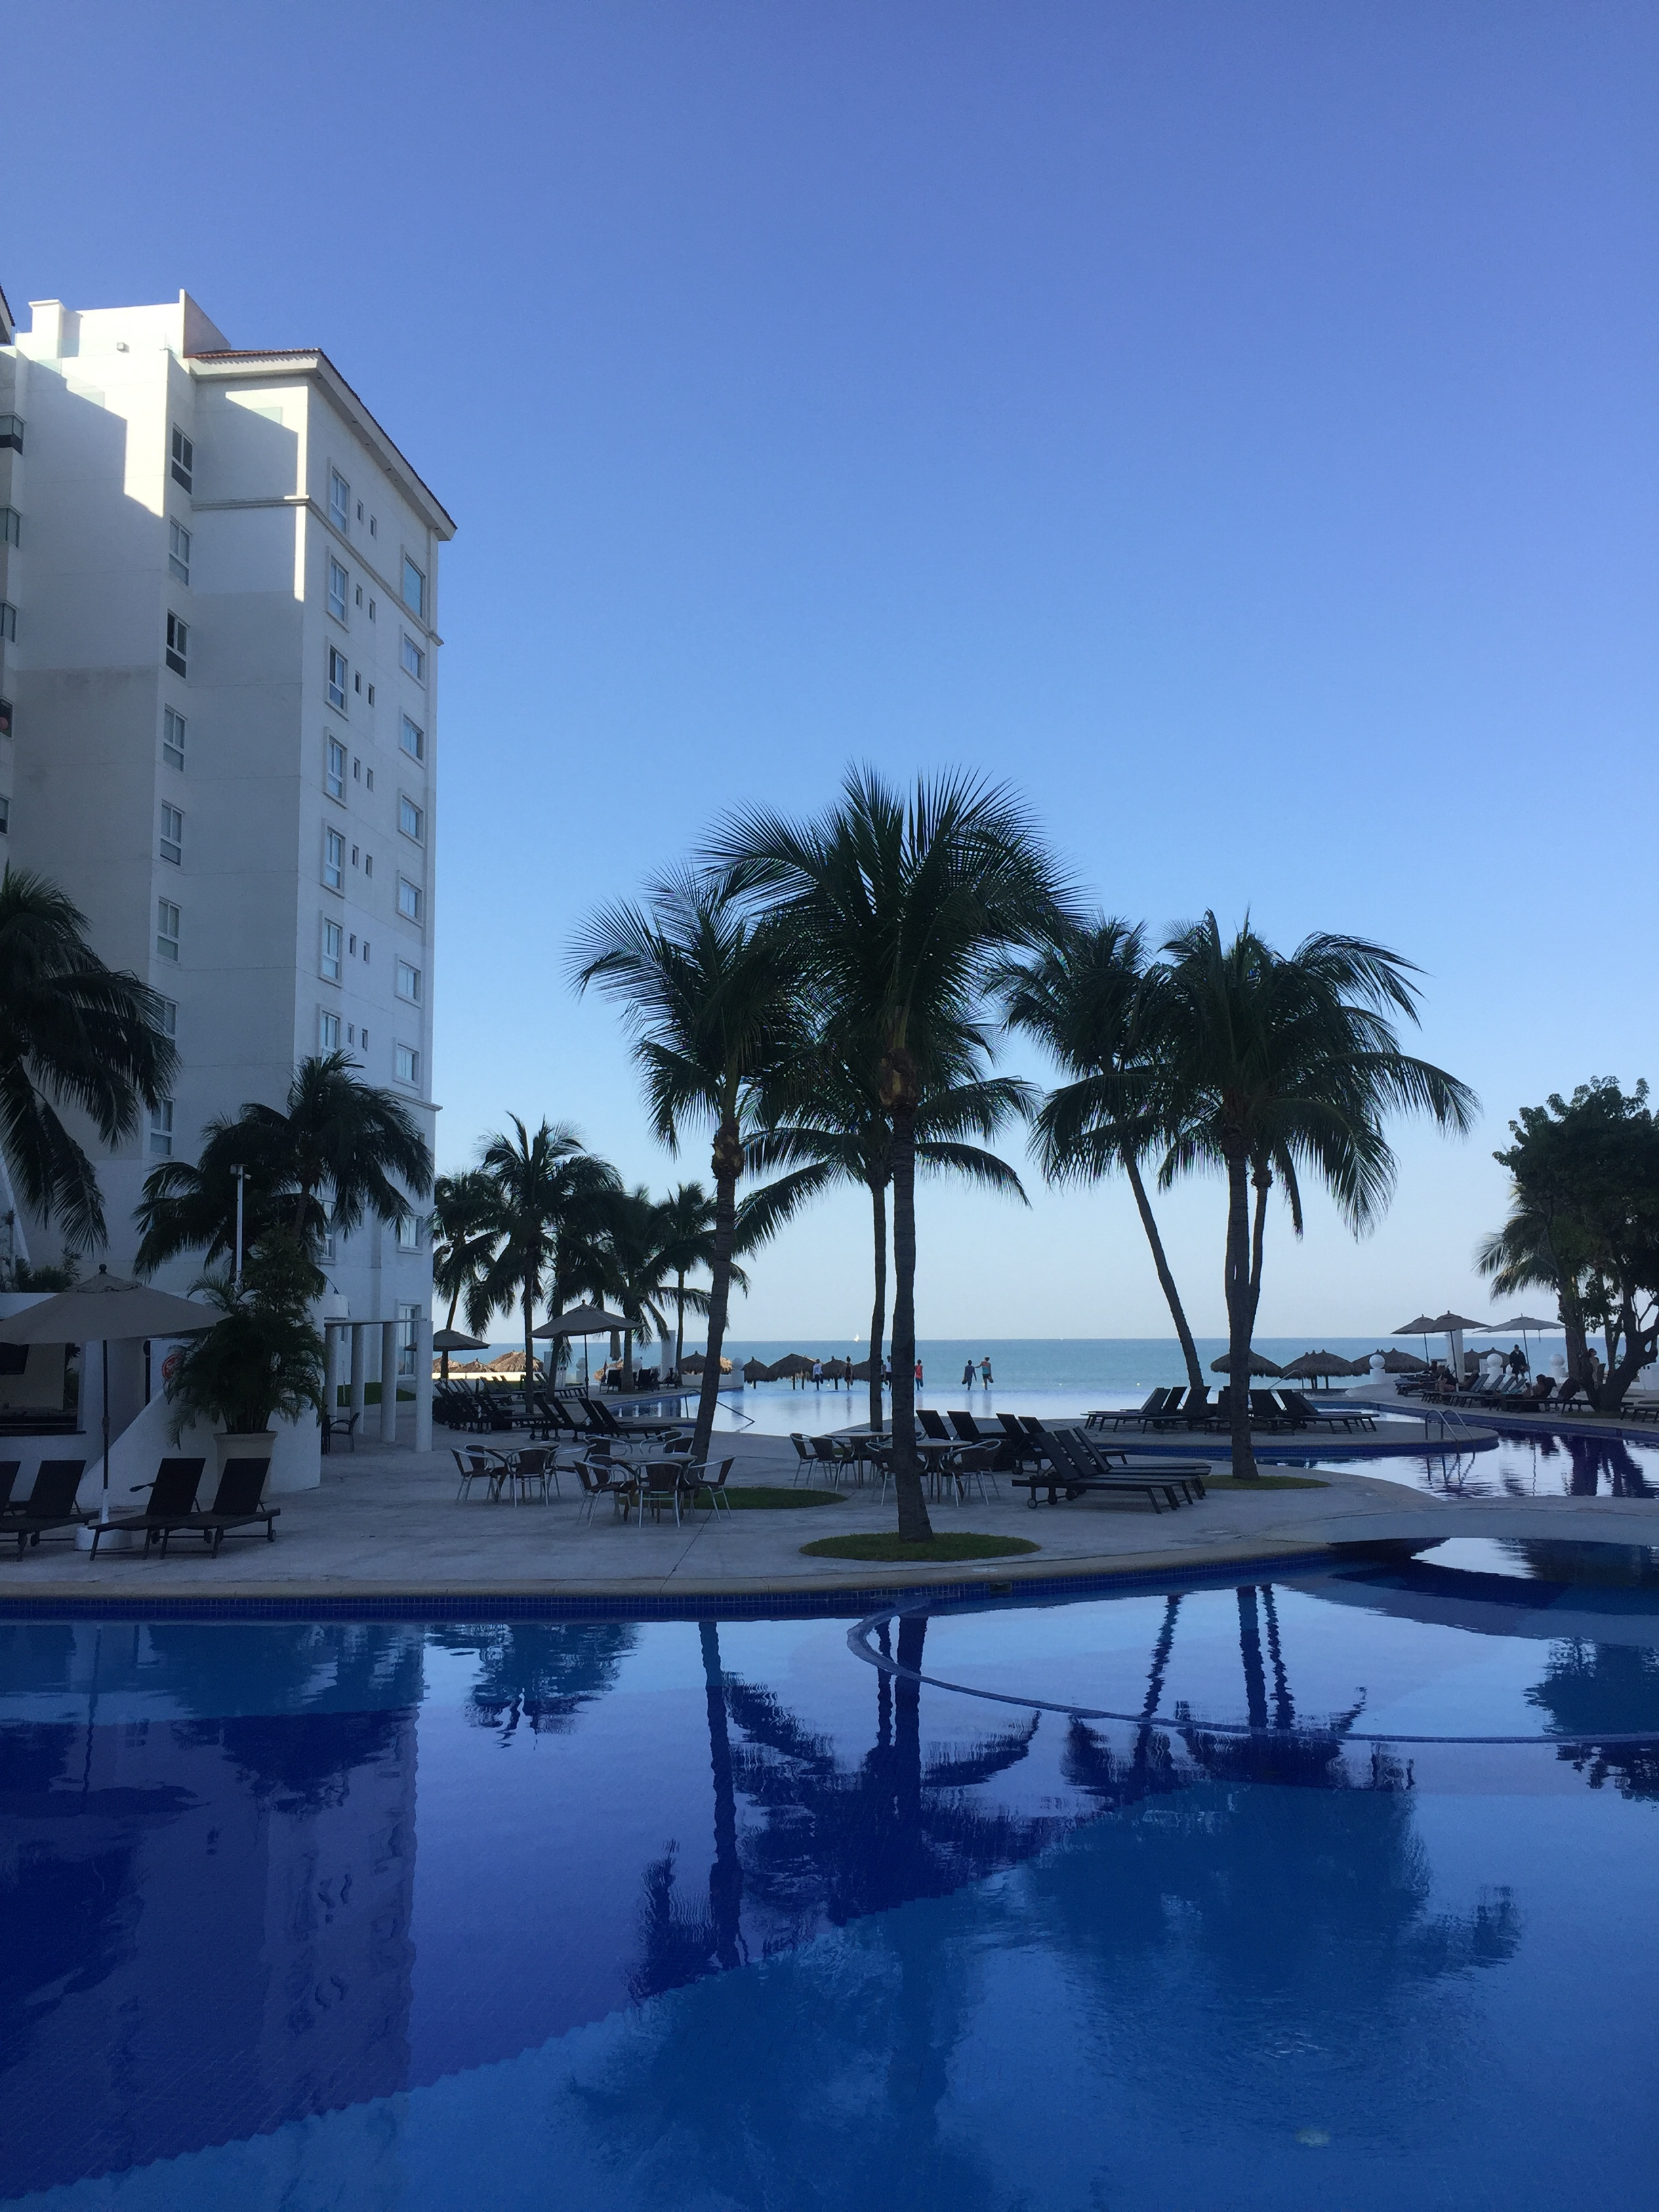 Dreams Villamagna Nuevo Vallarta Resort offered sweet solace for shedding the stress of NYC.